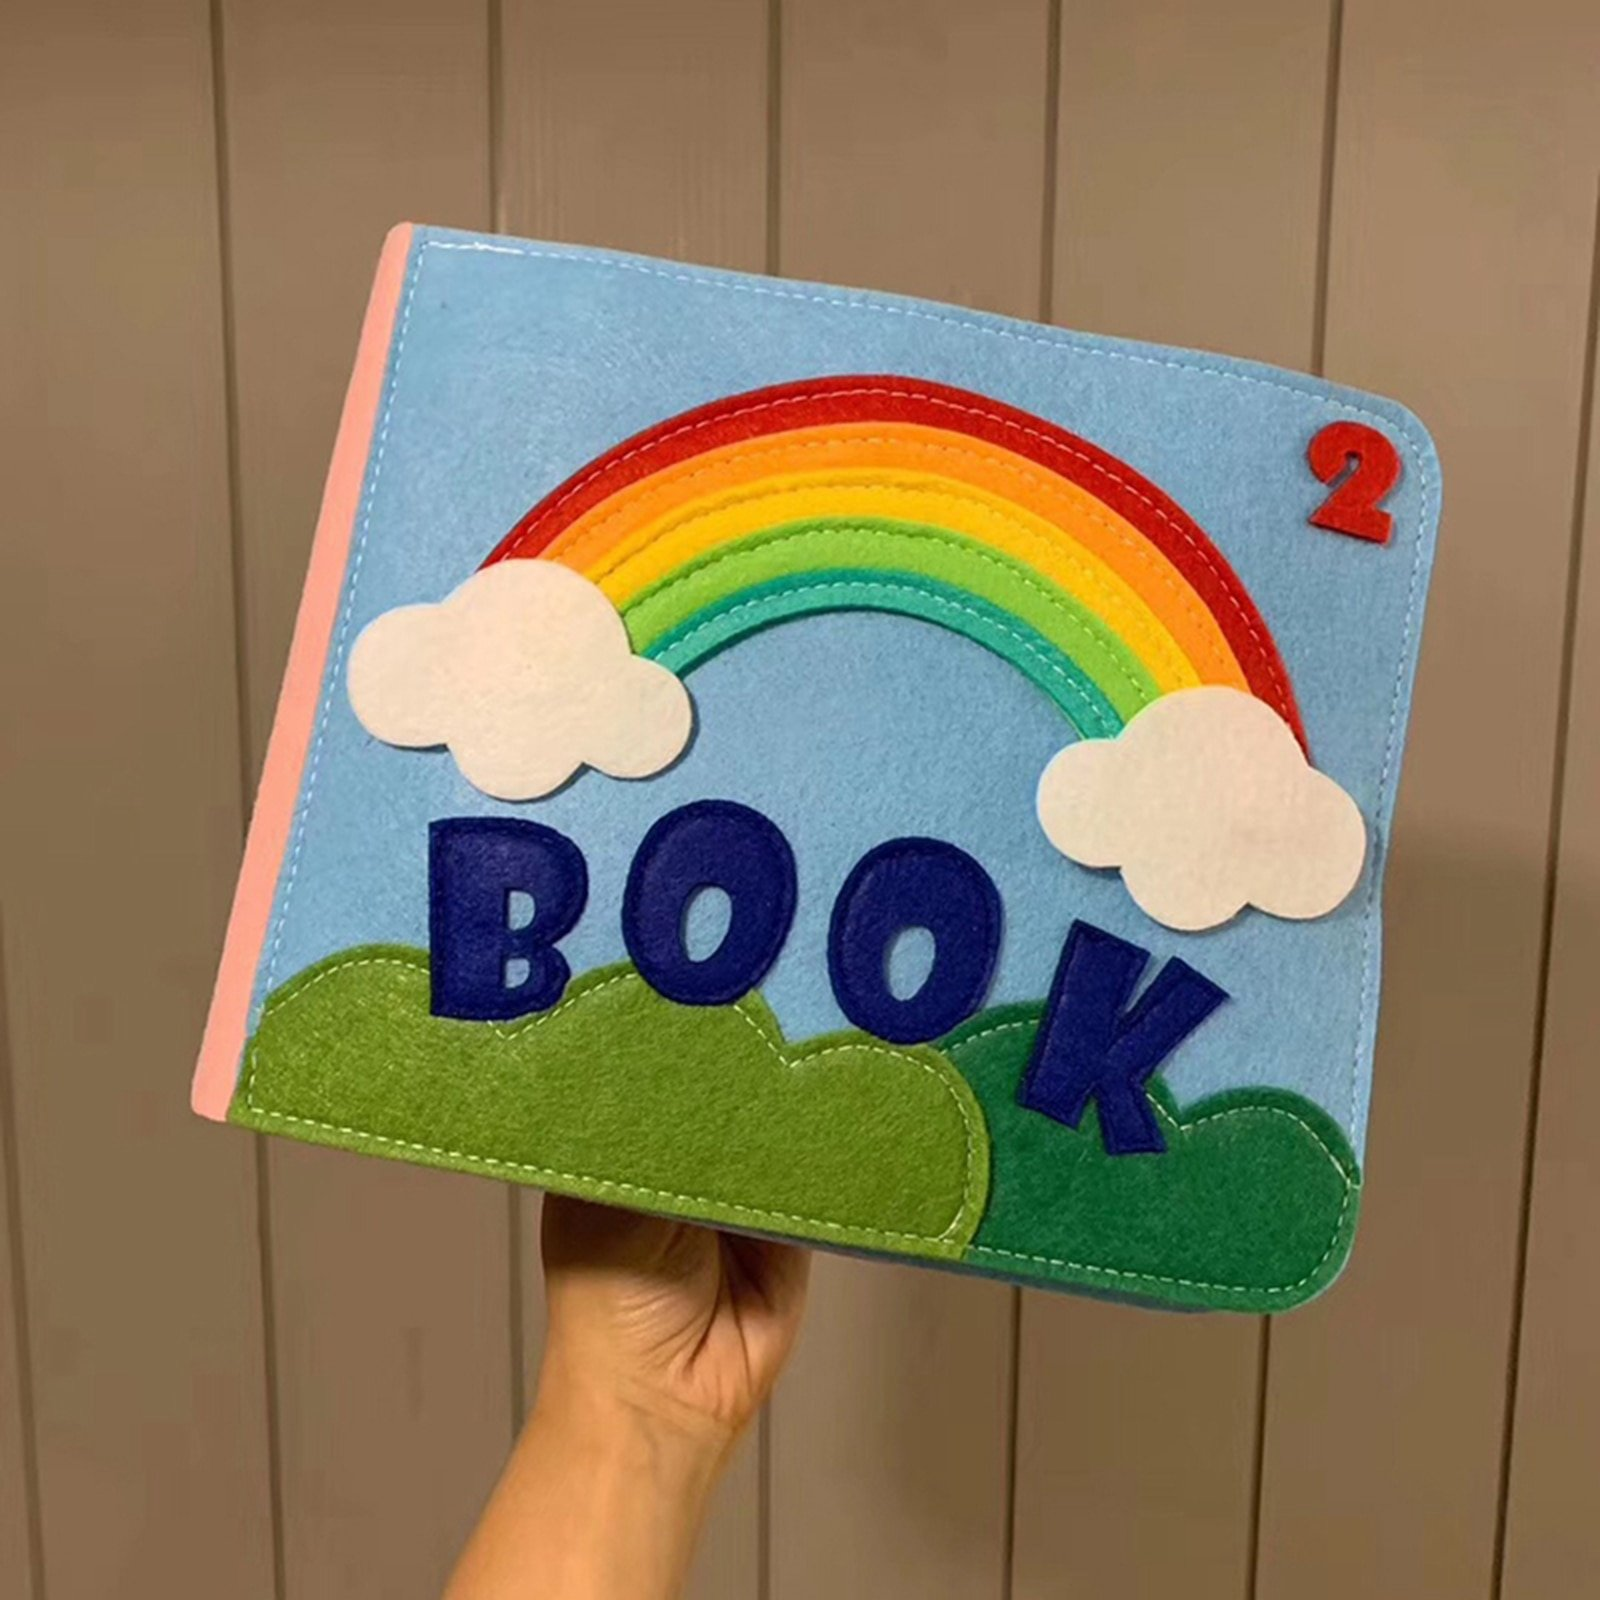 Felt Quiet Books Boys and Girls, Ultra Soft Baby Book Touch and feel Cloth Book, 3D Books Fabric Activity for Babies Toddlers